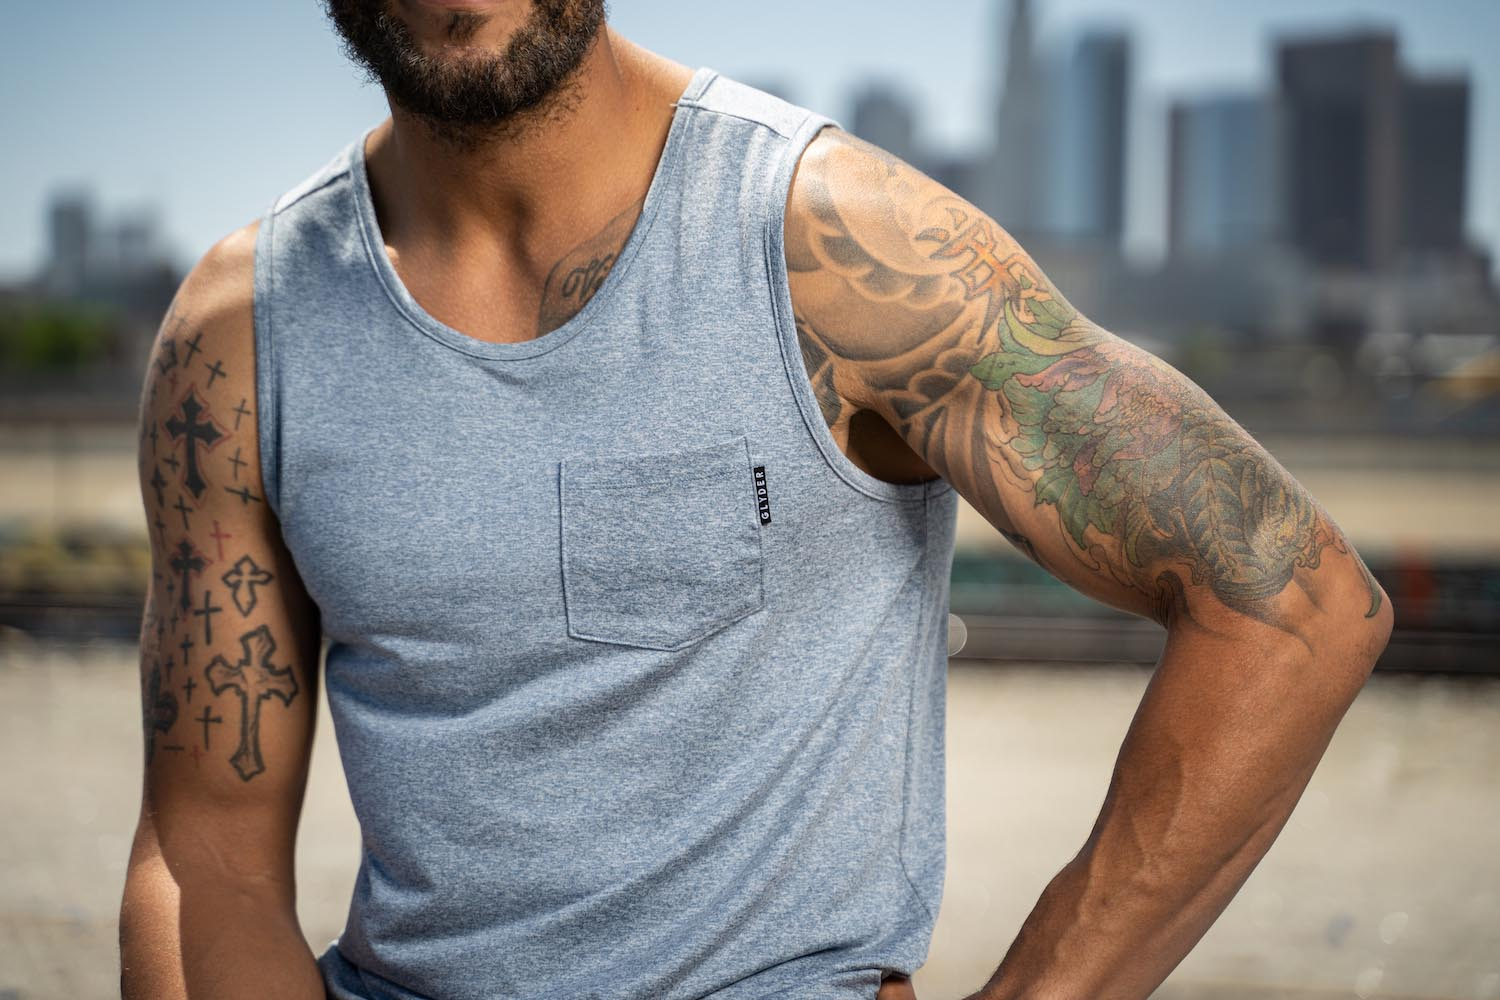 Lifestyle-On-Location-Model-Onmodel-Damion-Lloyd-Photography-Commercial-Product-Apparel-Clothing-Los-Angeles-Orange-County-male-man-GLYDER-sportswear-outdoor-city-blue-tank-top-muscles-tattoo